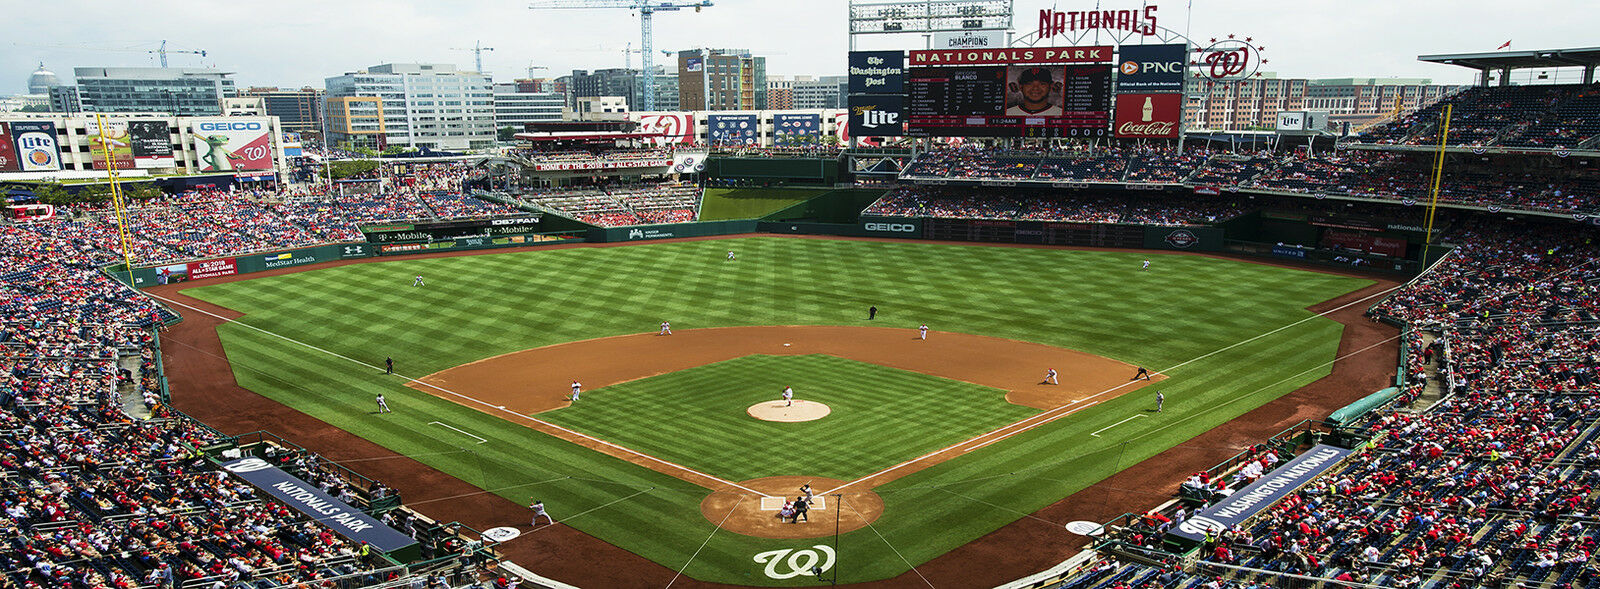 New York Mets at Washington Nationals Tickets (Fireworks)